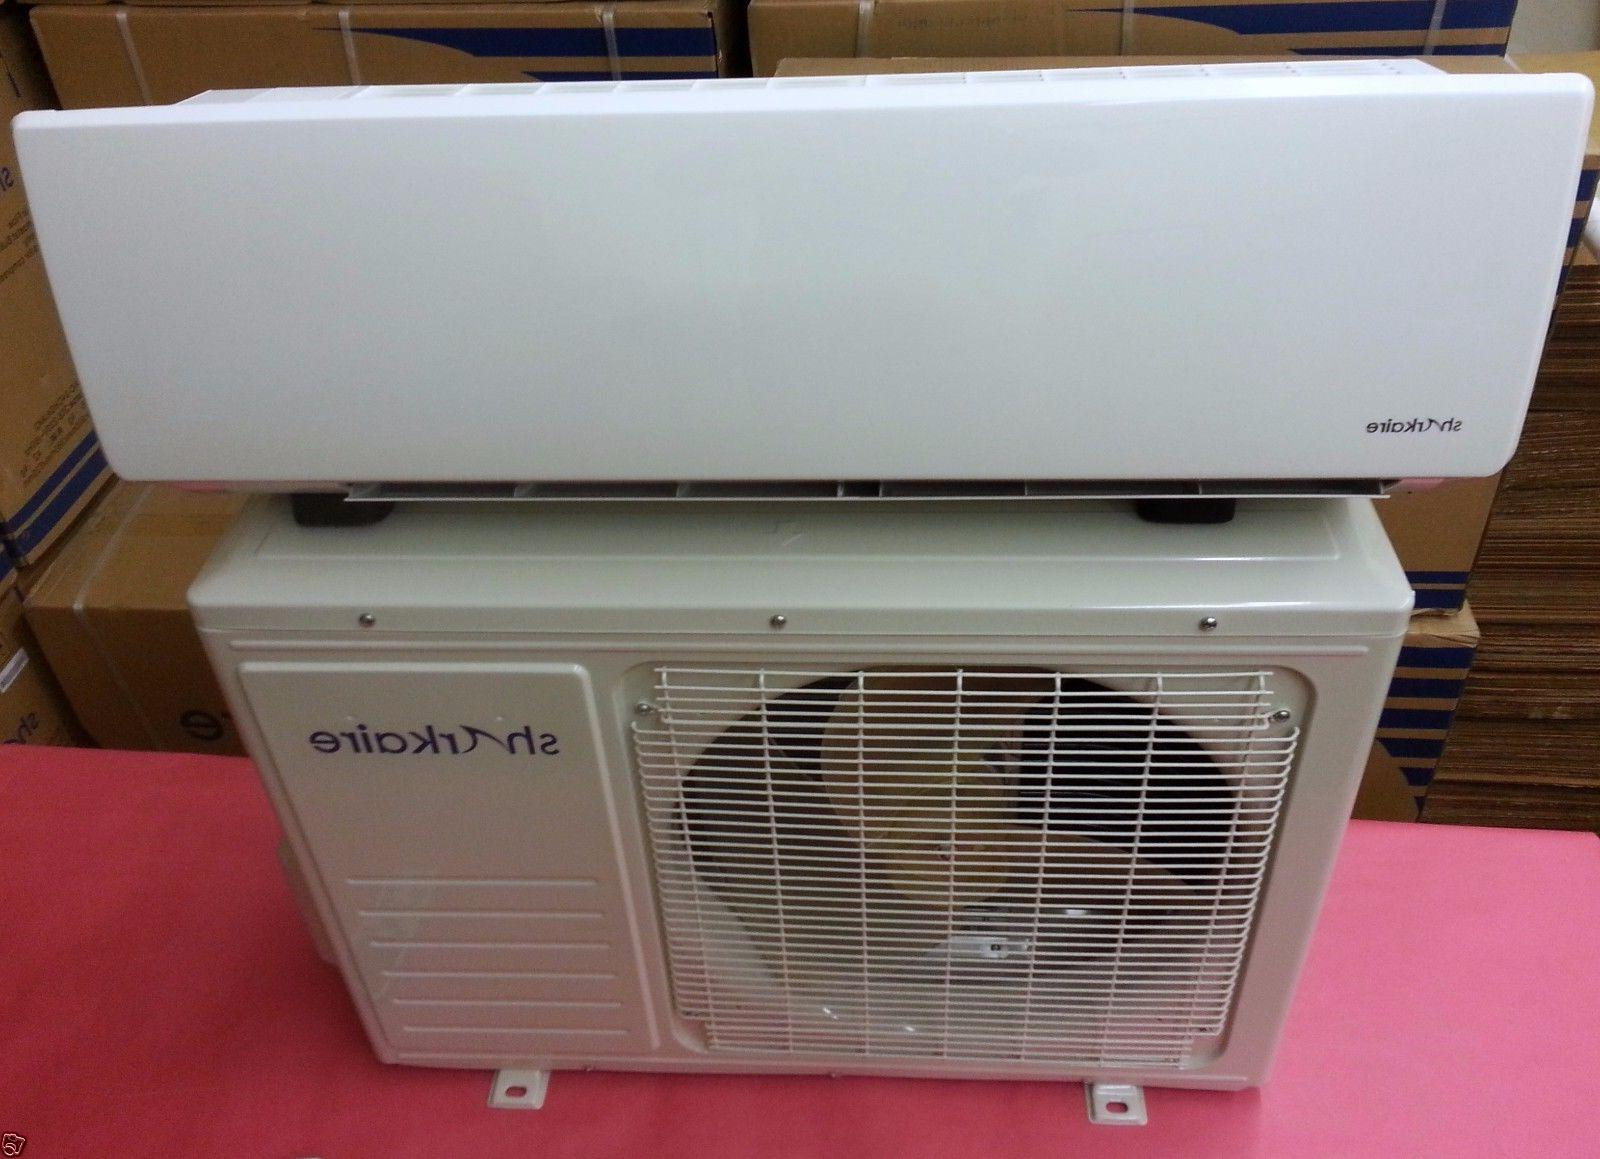 12000 Ductless Conditioner, 1 Ton Heat Pump, Smart Remote